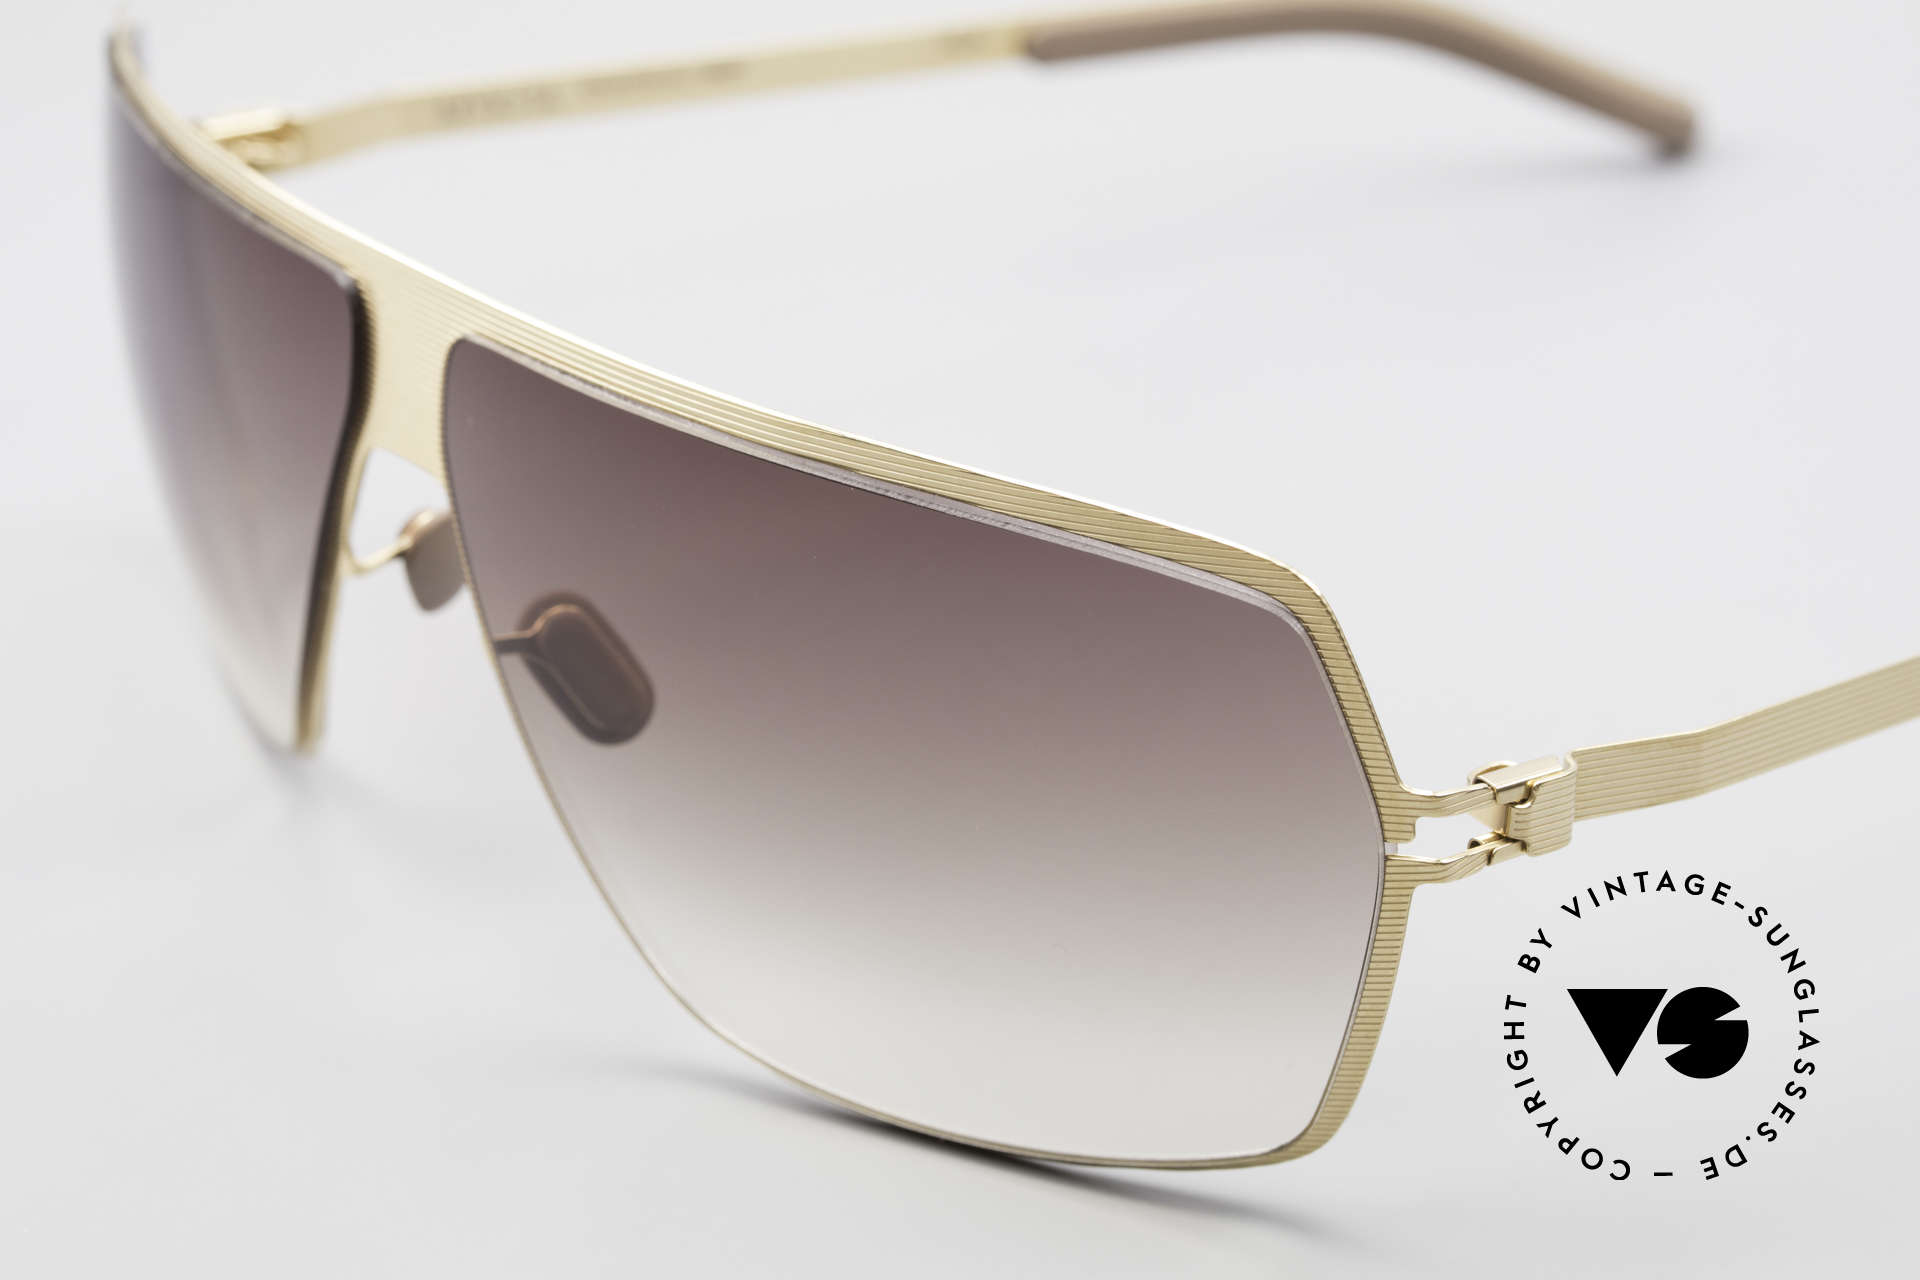 Mykita Rock Vintage No 1 Collection 2009, flexible metal frame = innovative and elegant likewise, Made for Men